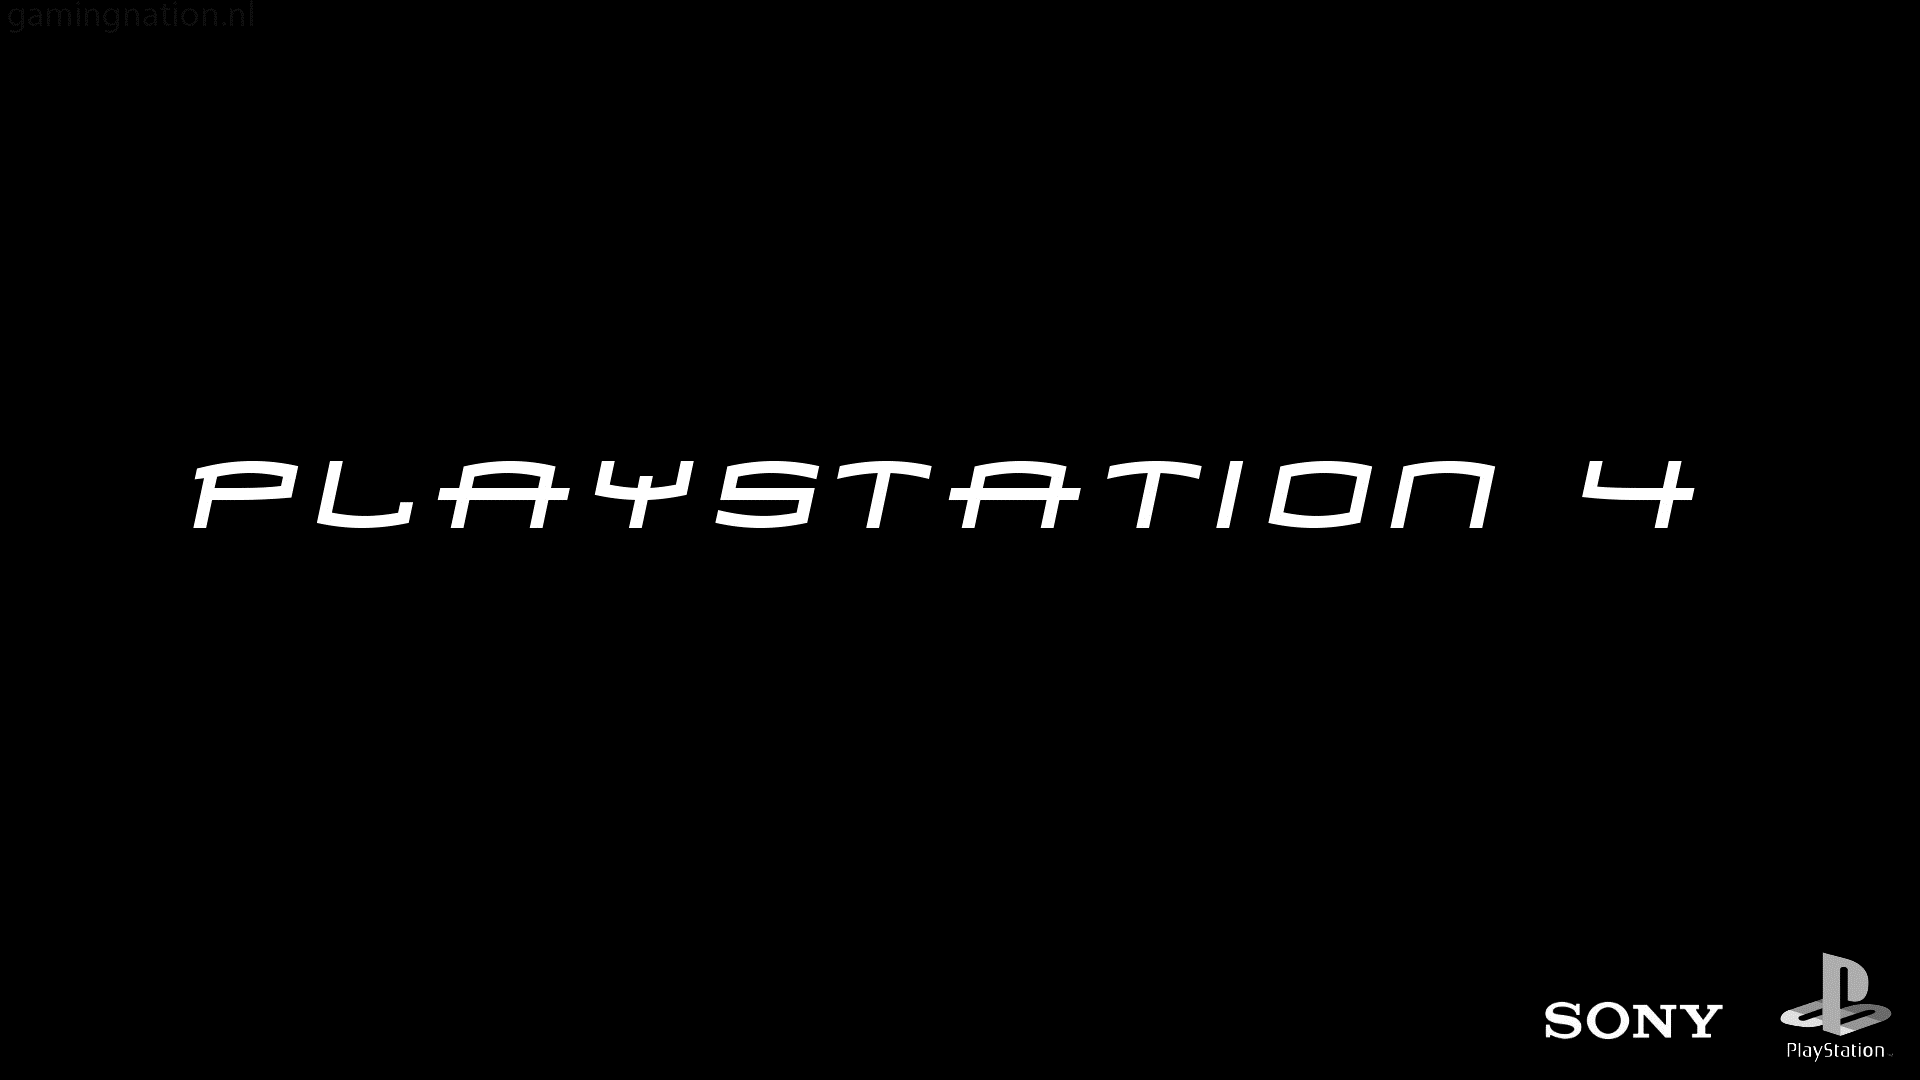 sony playstation 4 logo. editorial: playstation 4- welcome to a future with endless possibilities · levelsave sony playstation 4 logo